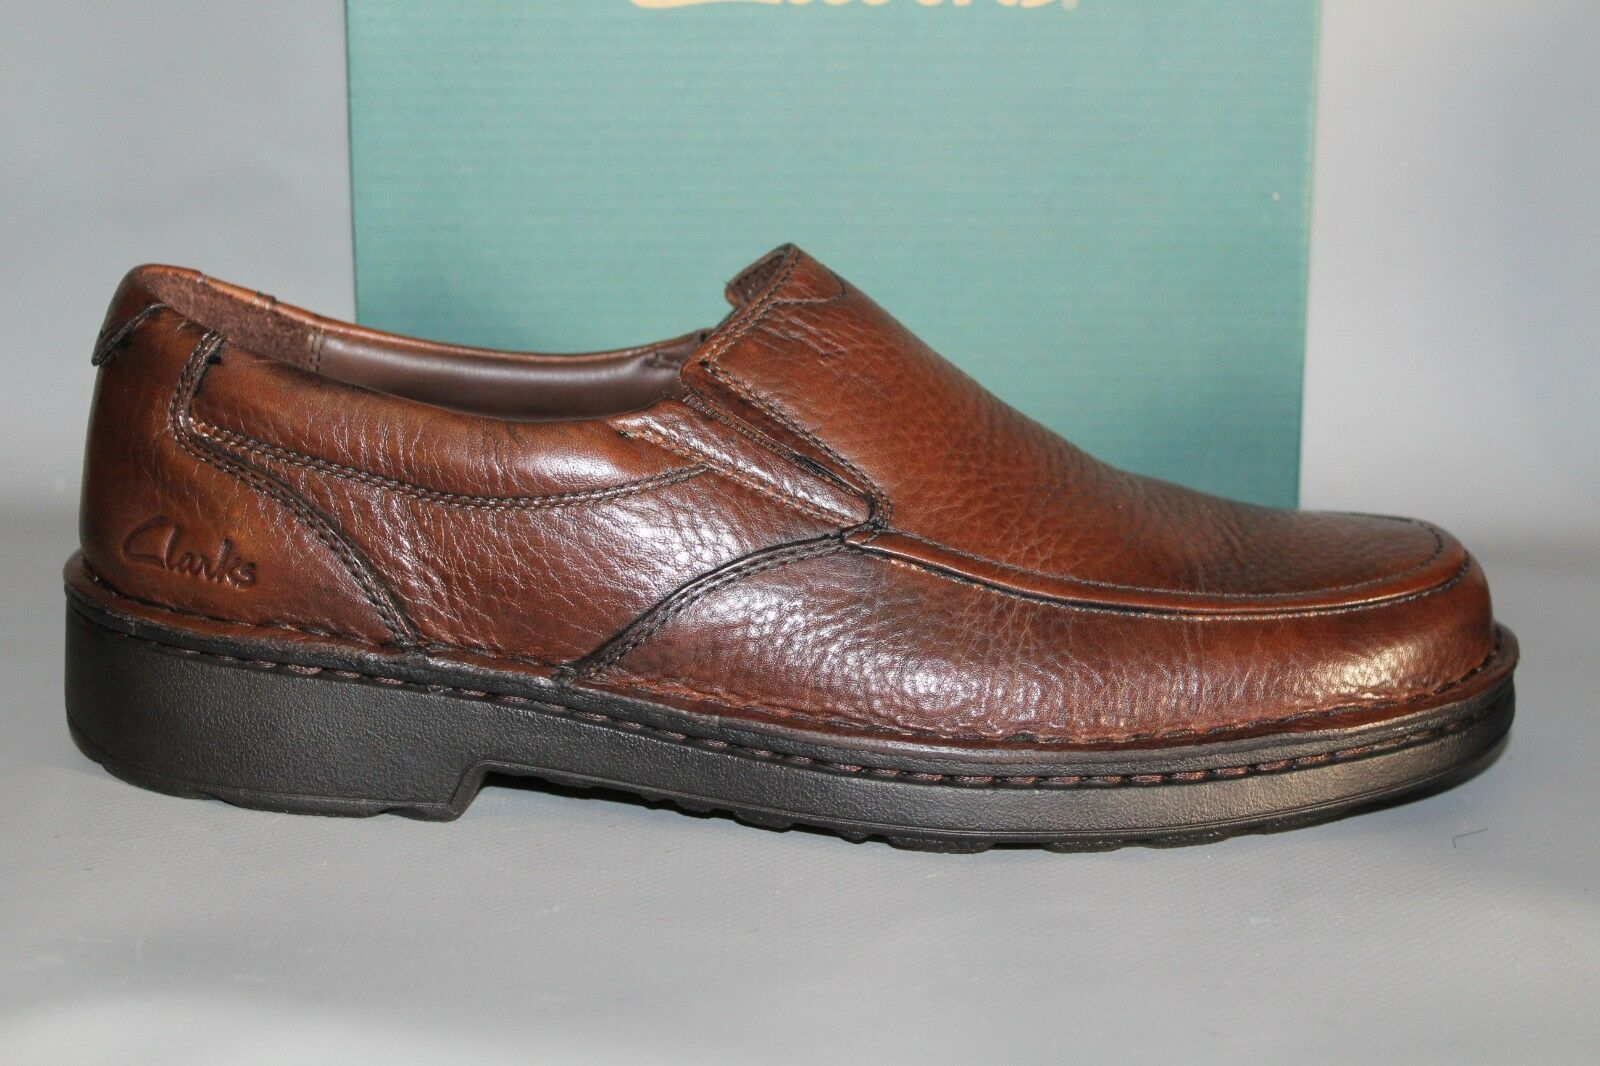 NEW Men's Clarks Discover Brown Leather Slip on Dress   Casual shoes